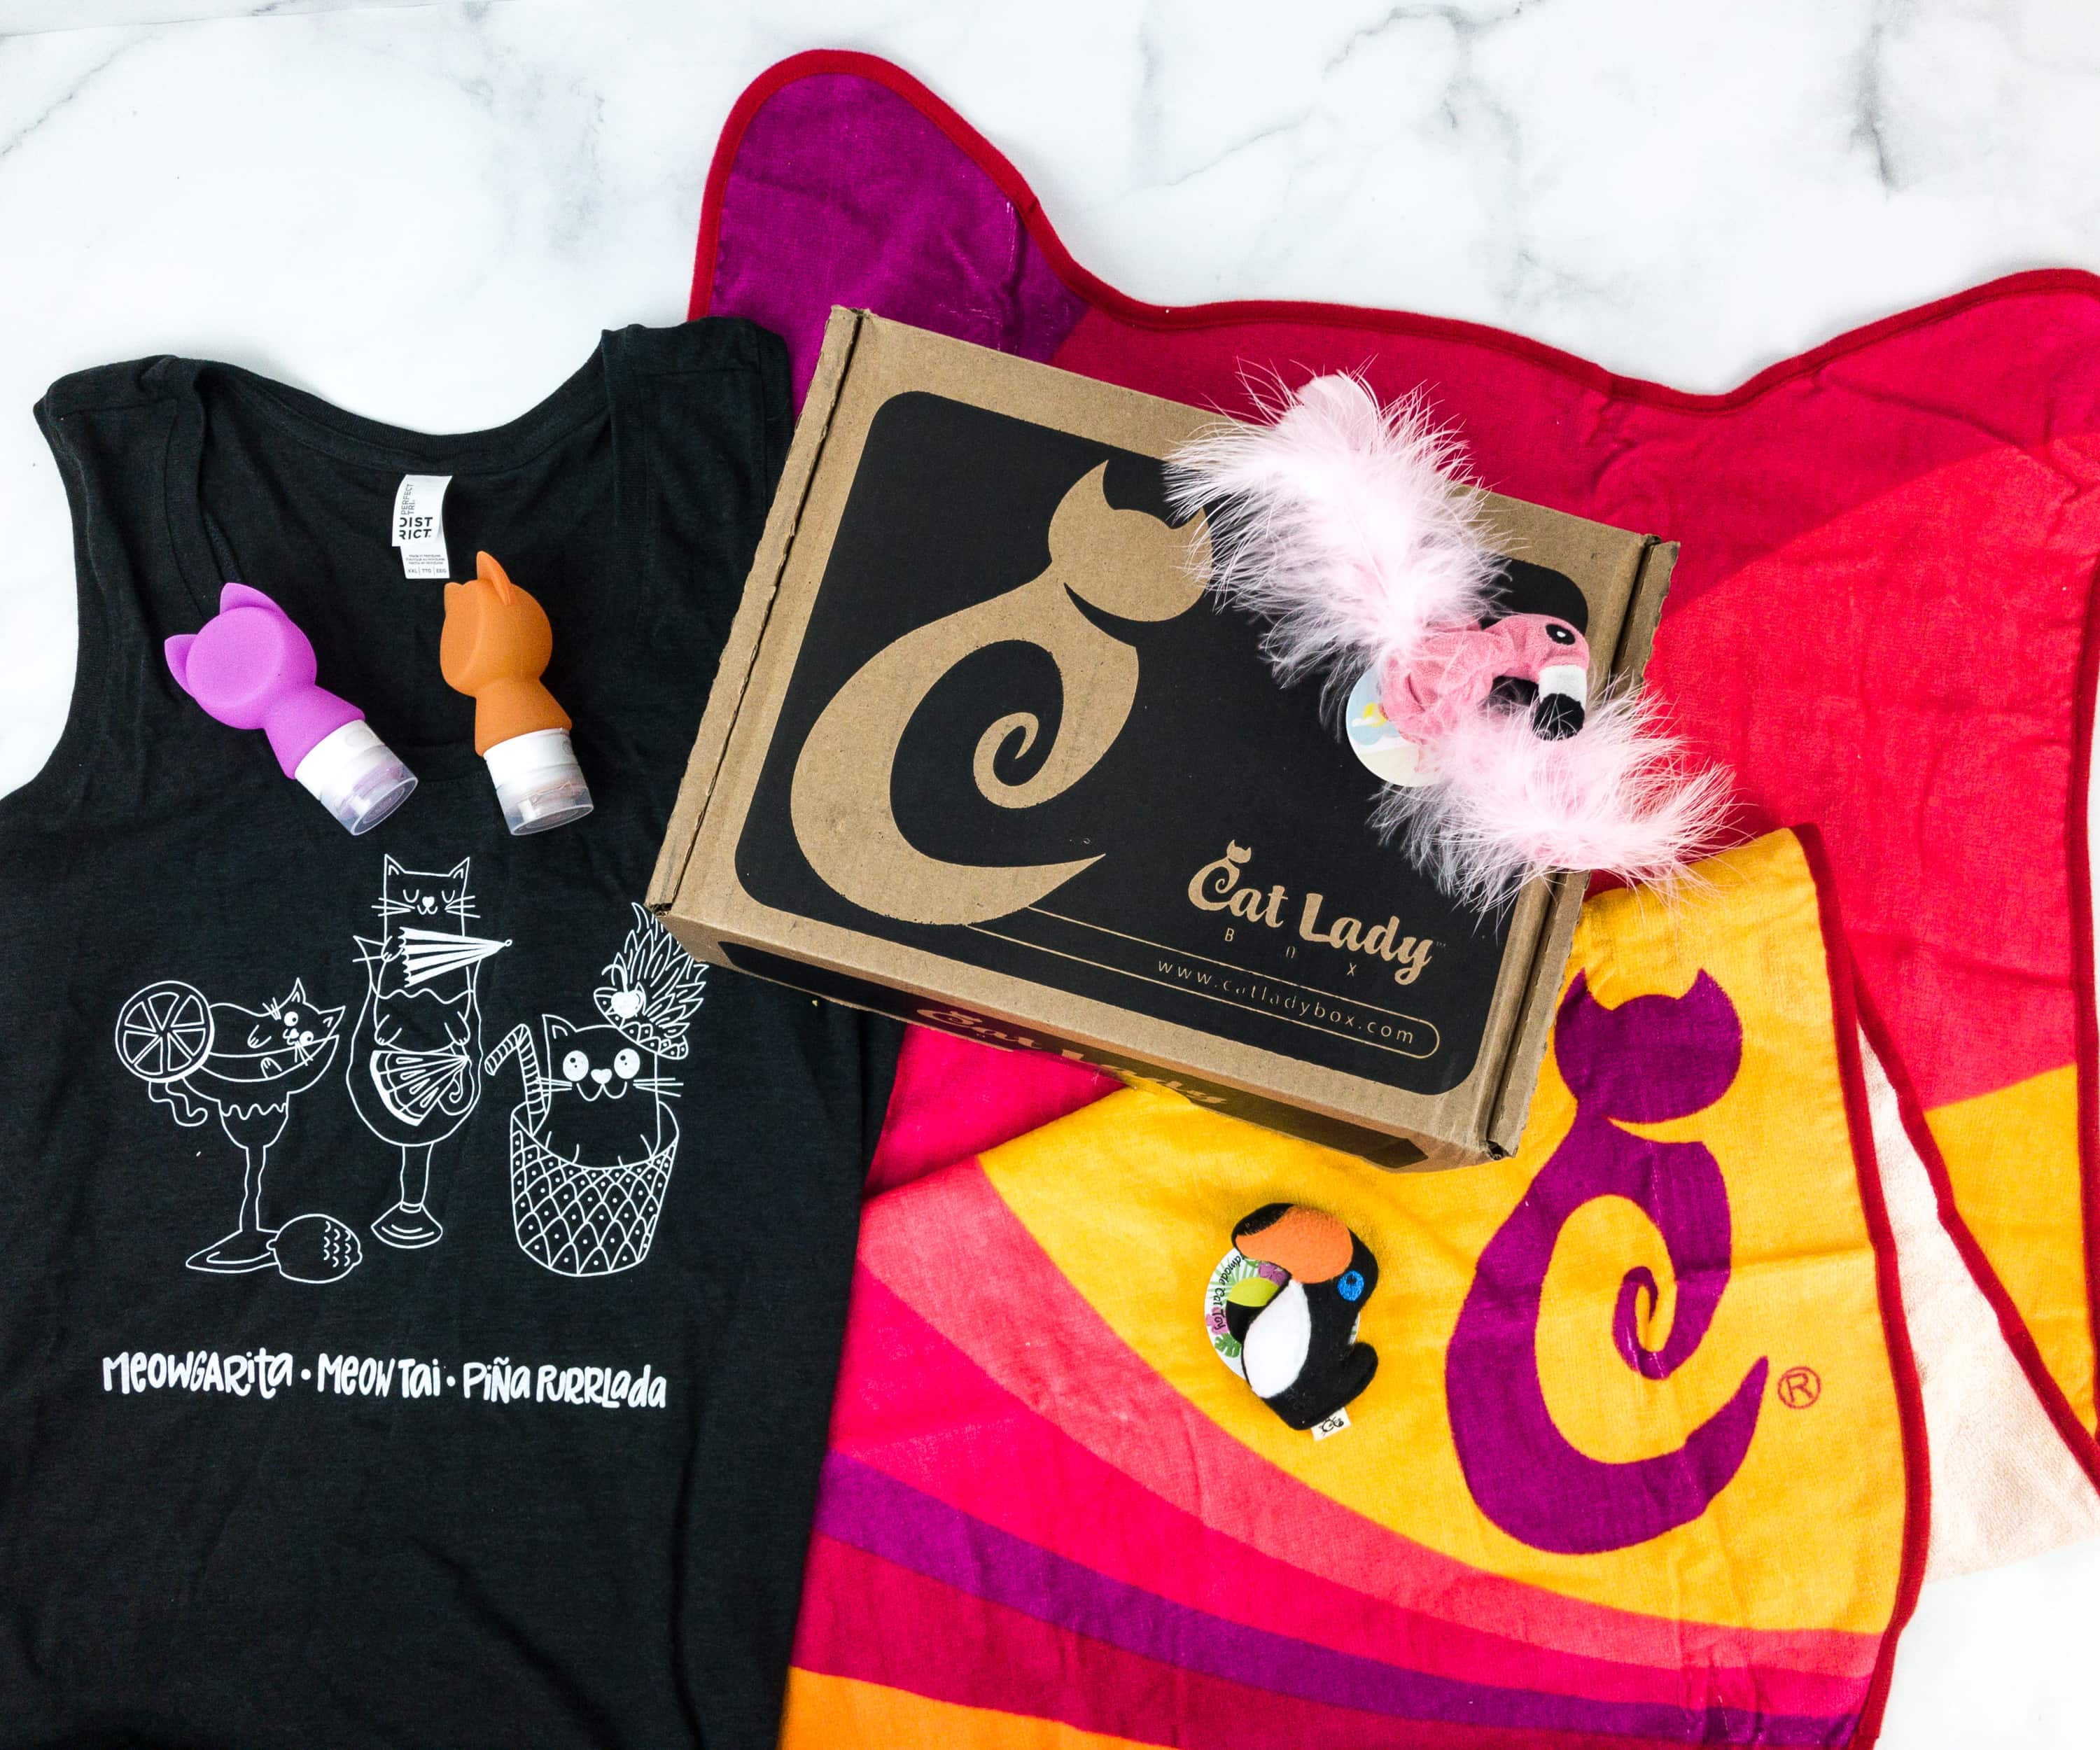 Cat Lady Box June 2019 Subscription Box Review + Coupon